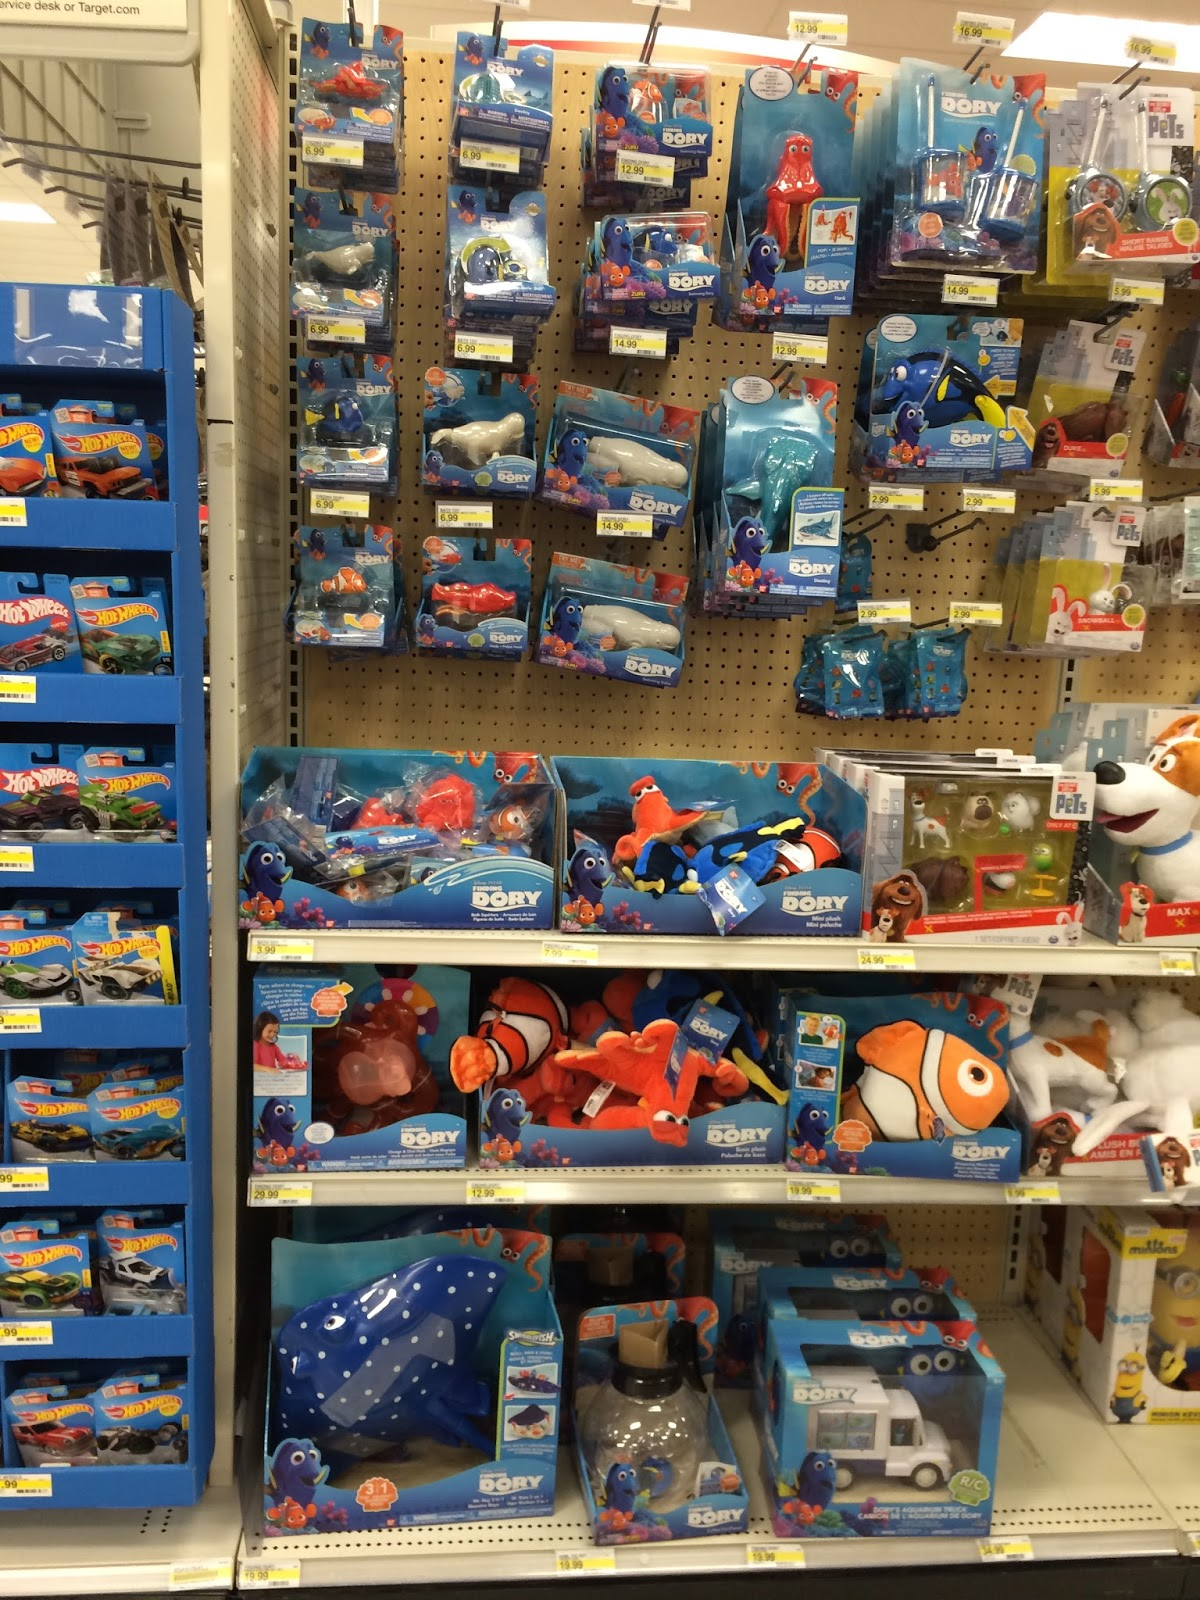 Target Toy Walmart : Dan the pixar fan events finding dory merch release